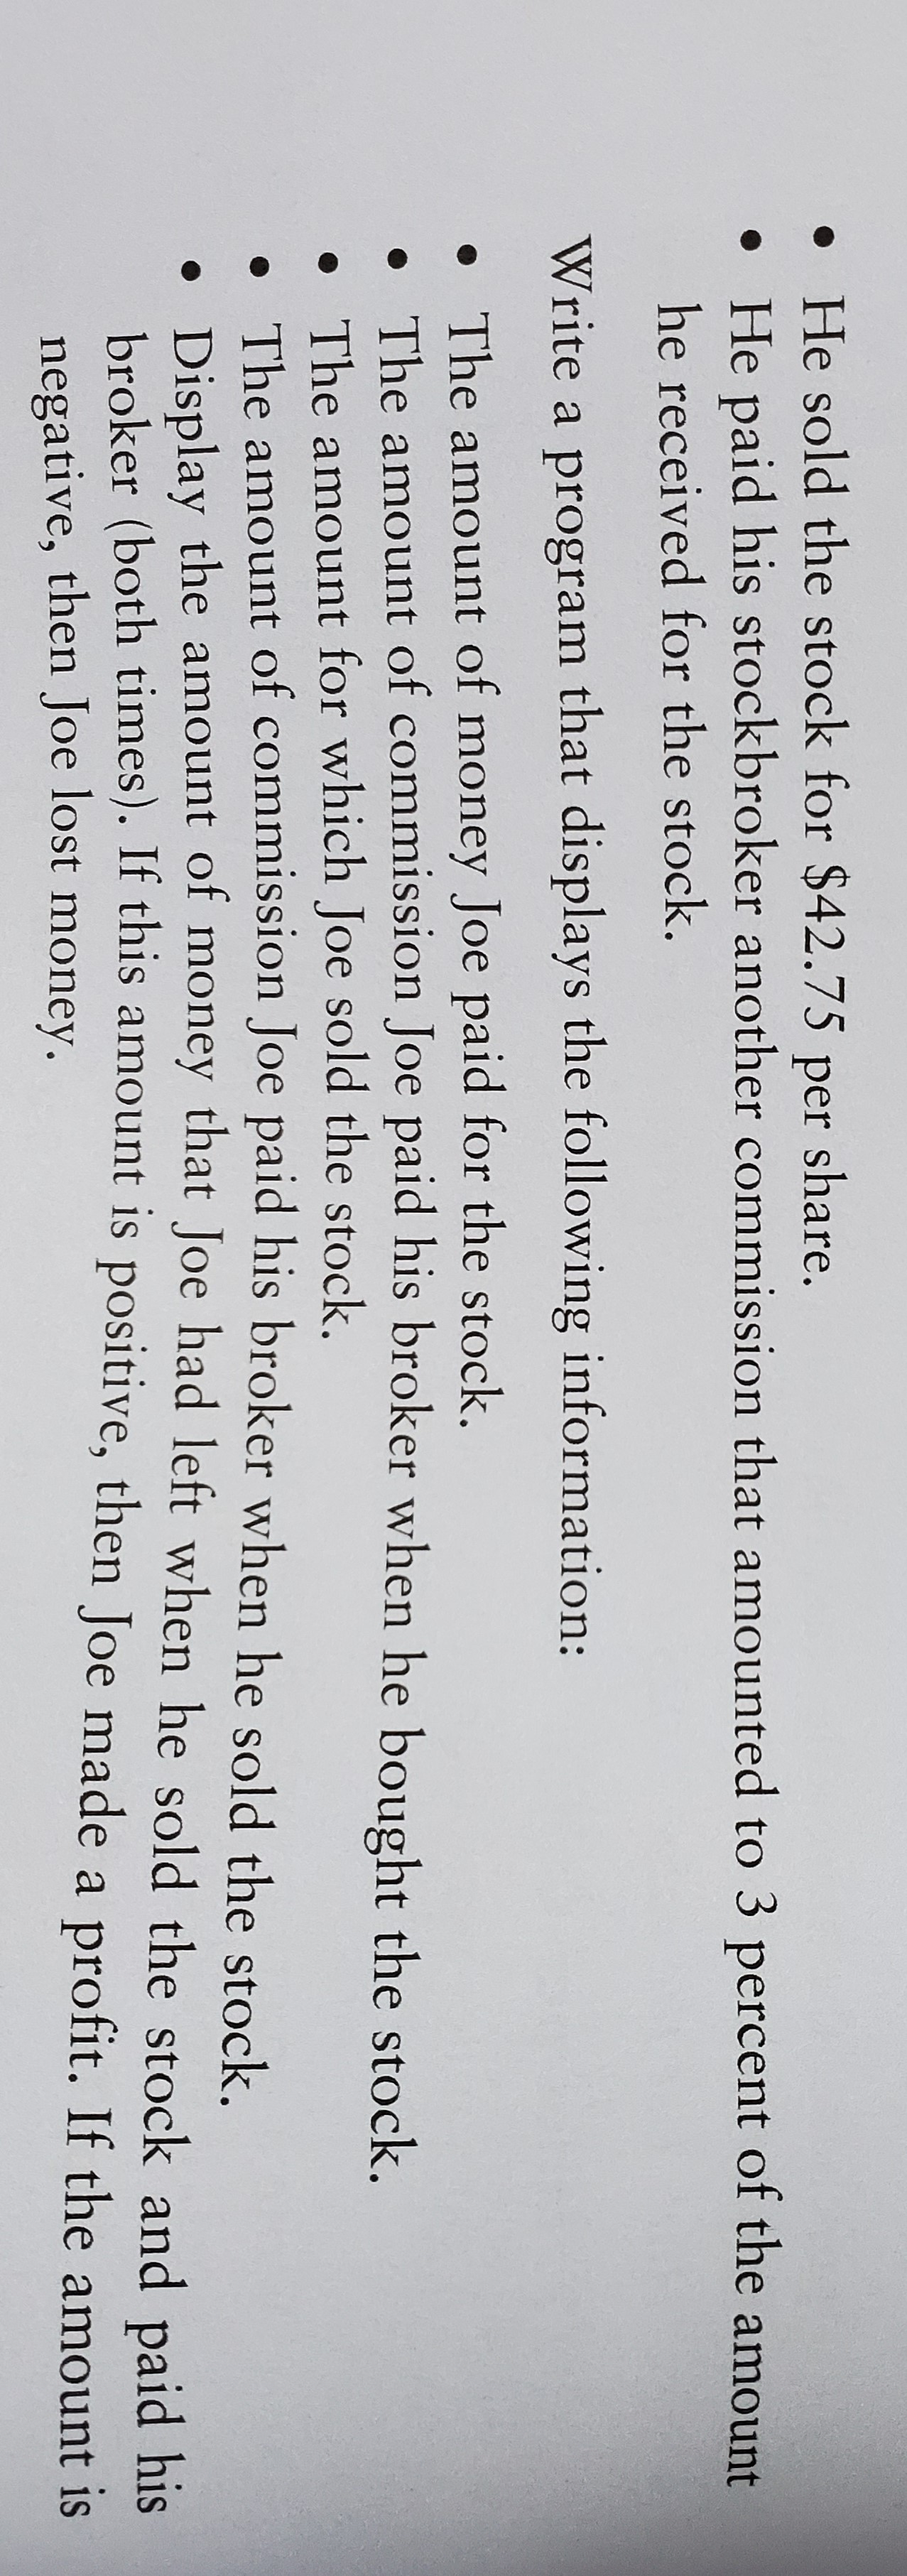 • He sold the stock for $42.75 per share. • He paid his stockbroker another commission that amounted to 3 percent of the amount he received for the stock. Write a program that displays the following information: • The amount of money Joe paid for the stock. • The amount of commission Joe paid his broker when he bought the stock. The amount for which Joe sold the stock. • The amount of commission Joe paid his broker when he sold the stock. • Display the amount of money that Joe had left when he sold the stock and paid his broker (both times). If this amount is positive, then Joe made a profit. If the amount is negative, then Joe lost money.